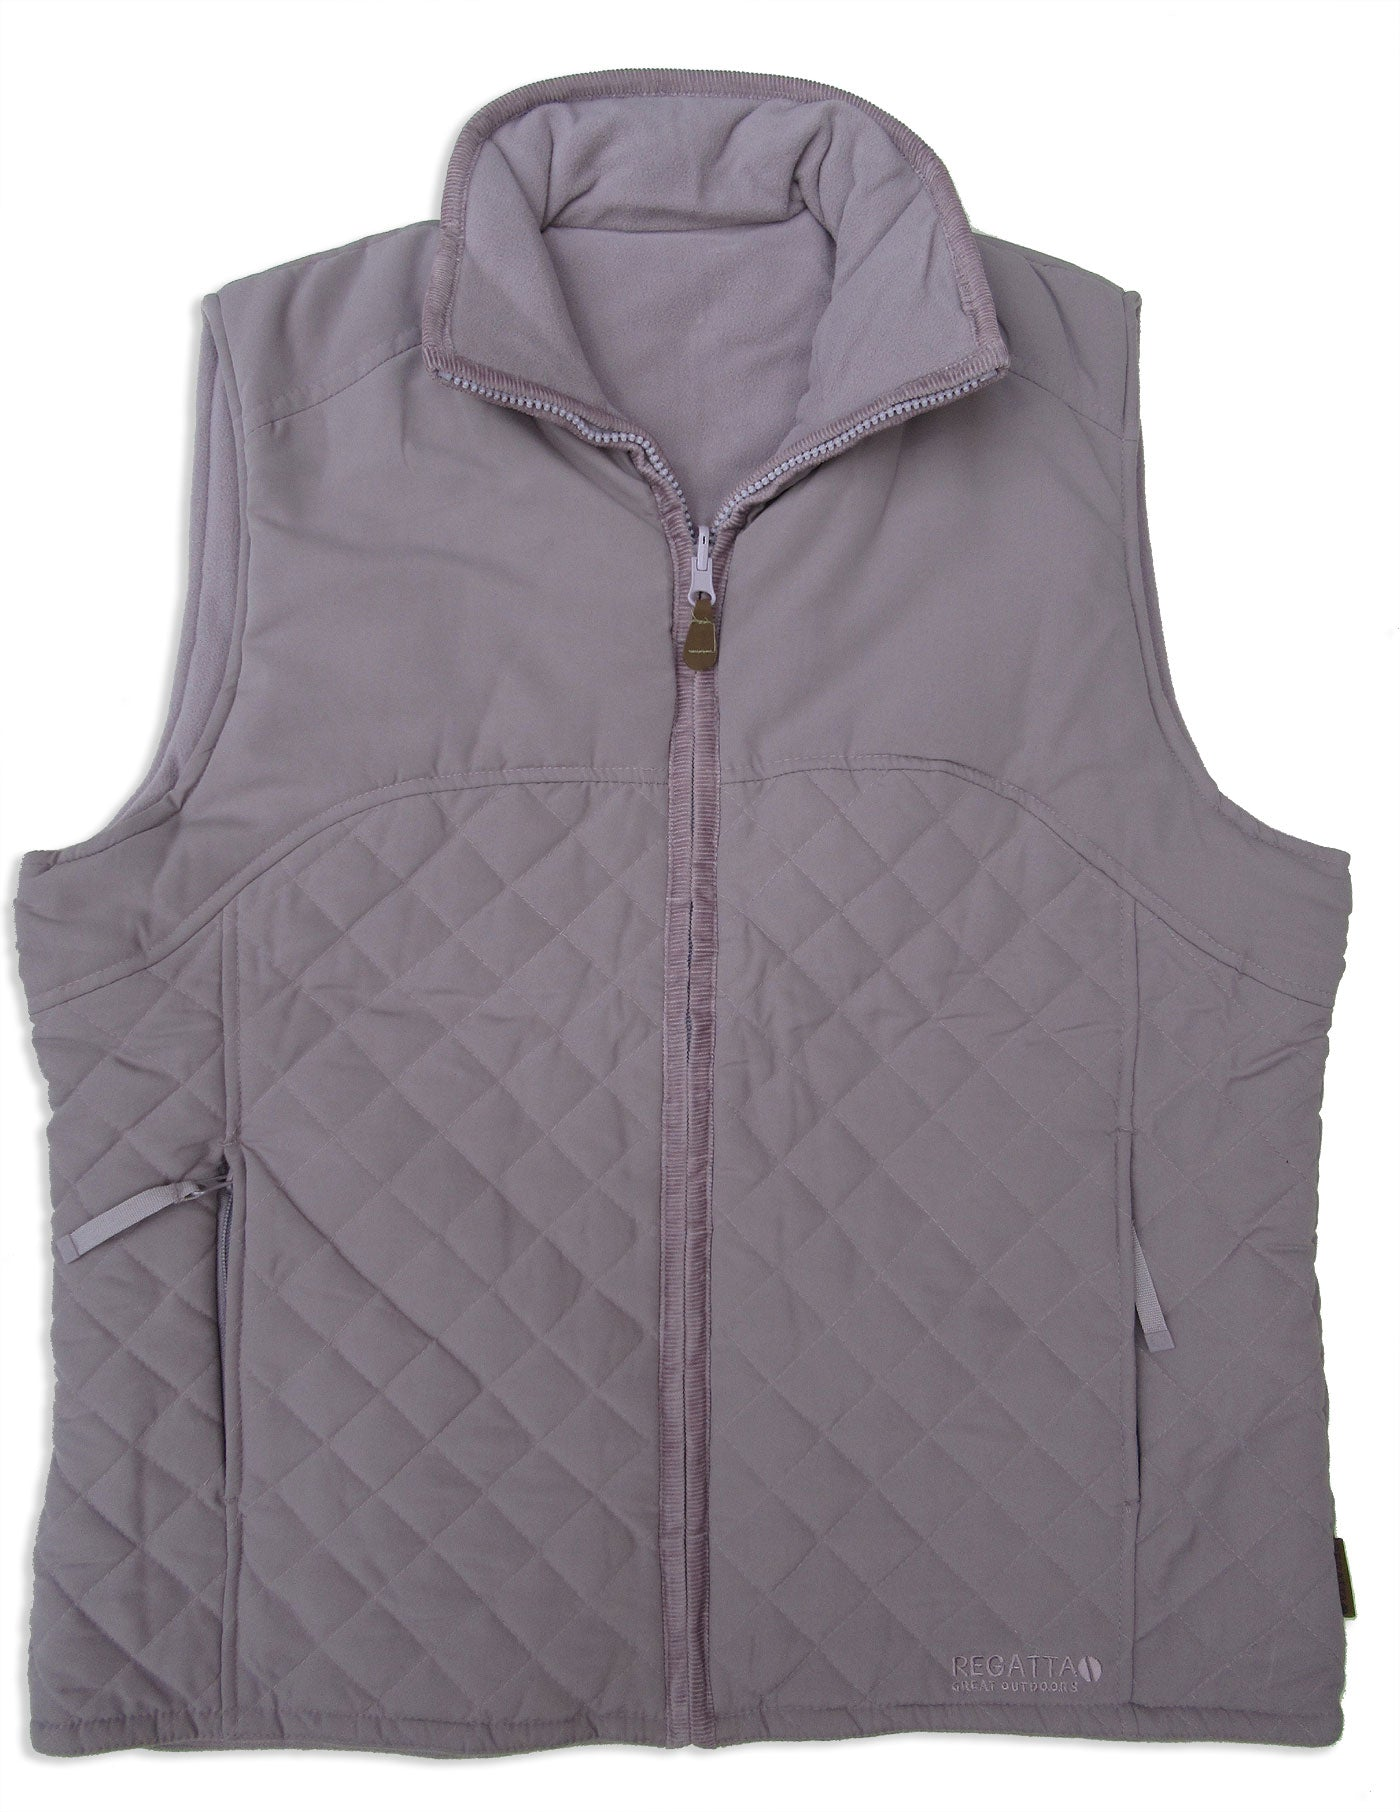 HEATHER Bronwen Body Warmer by Regatta